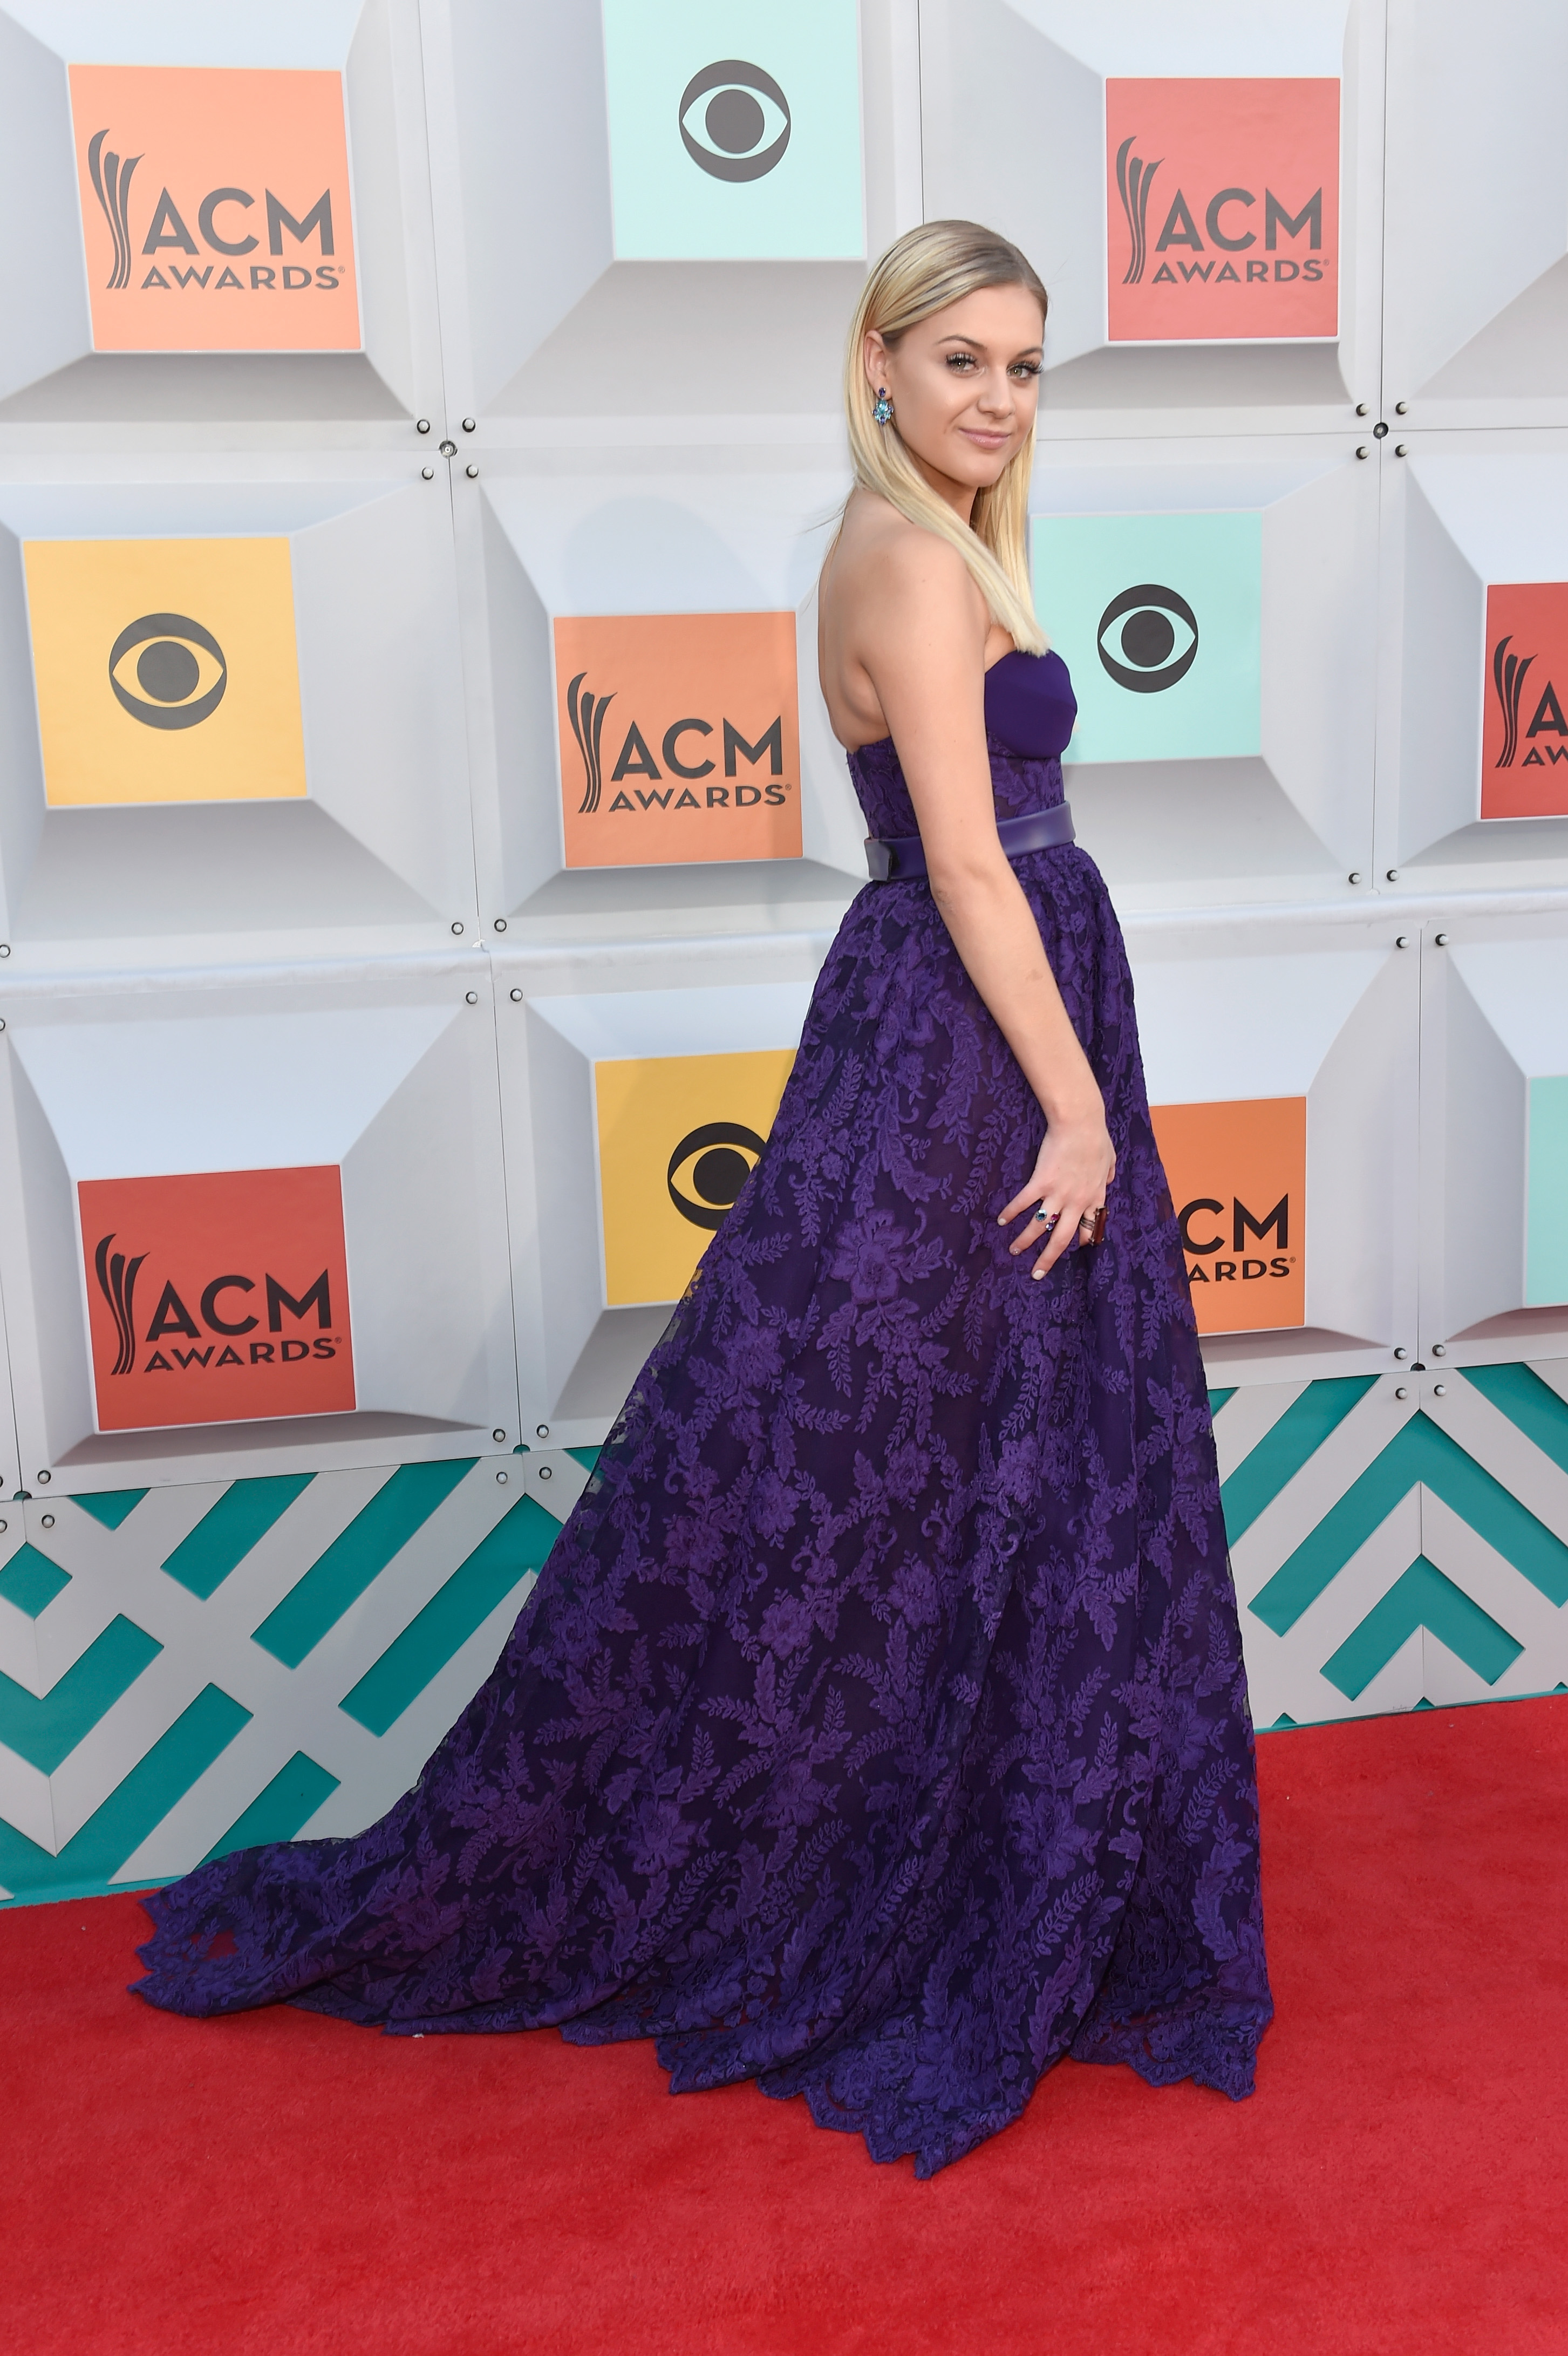 photos: 51st annual acm awards - red carpet arrivals | sounds like